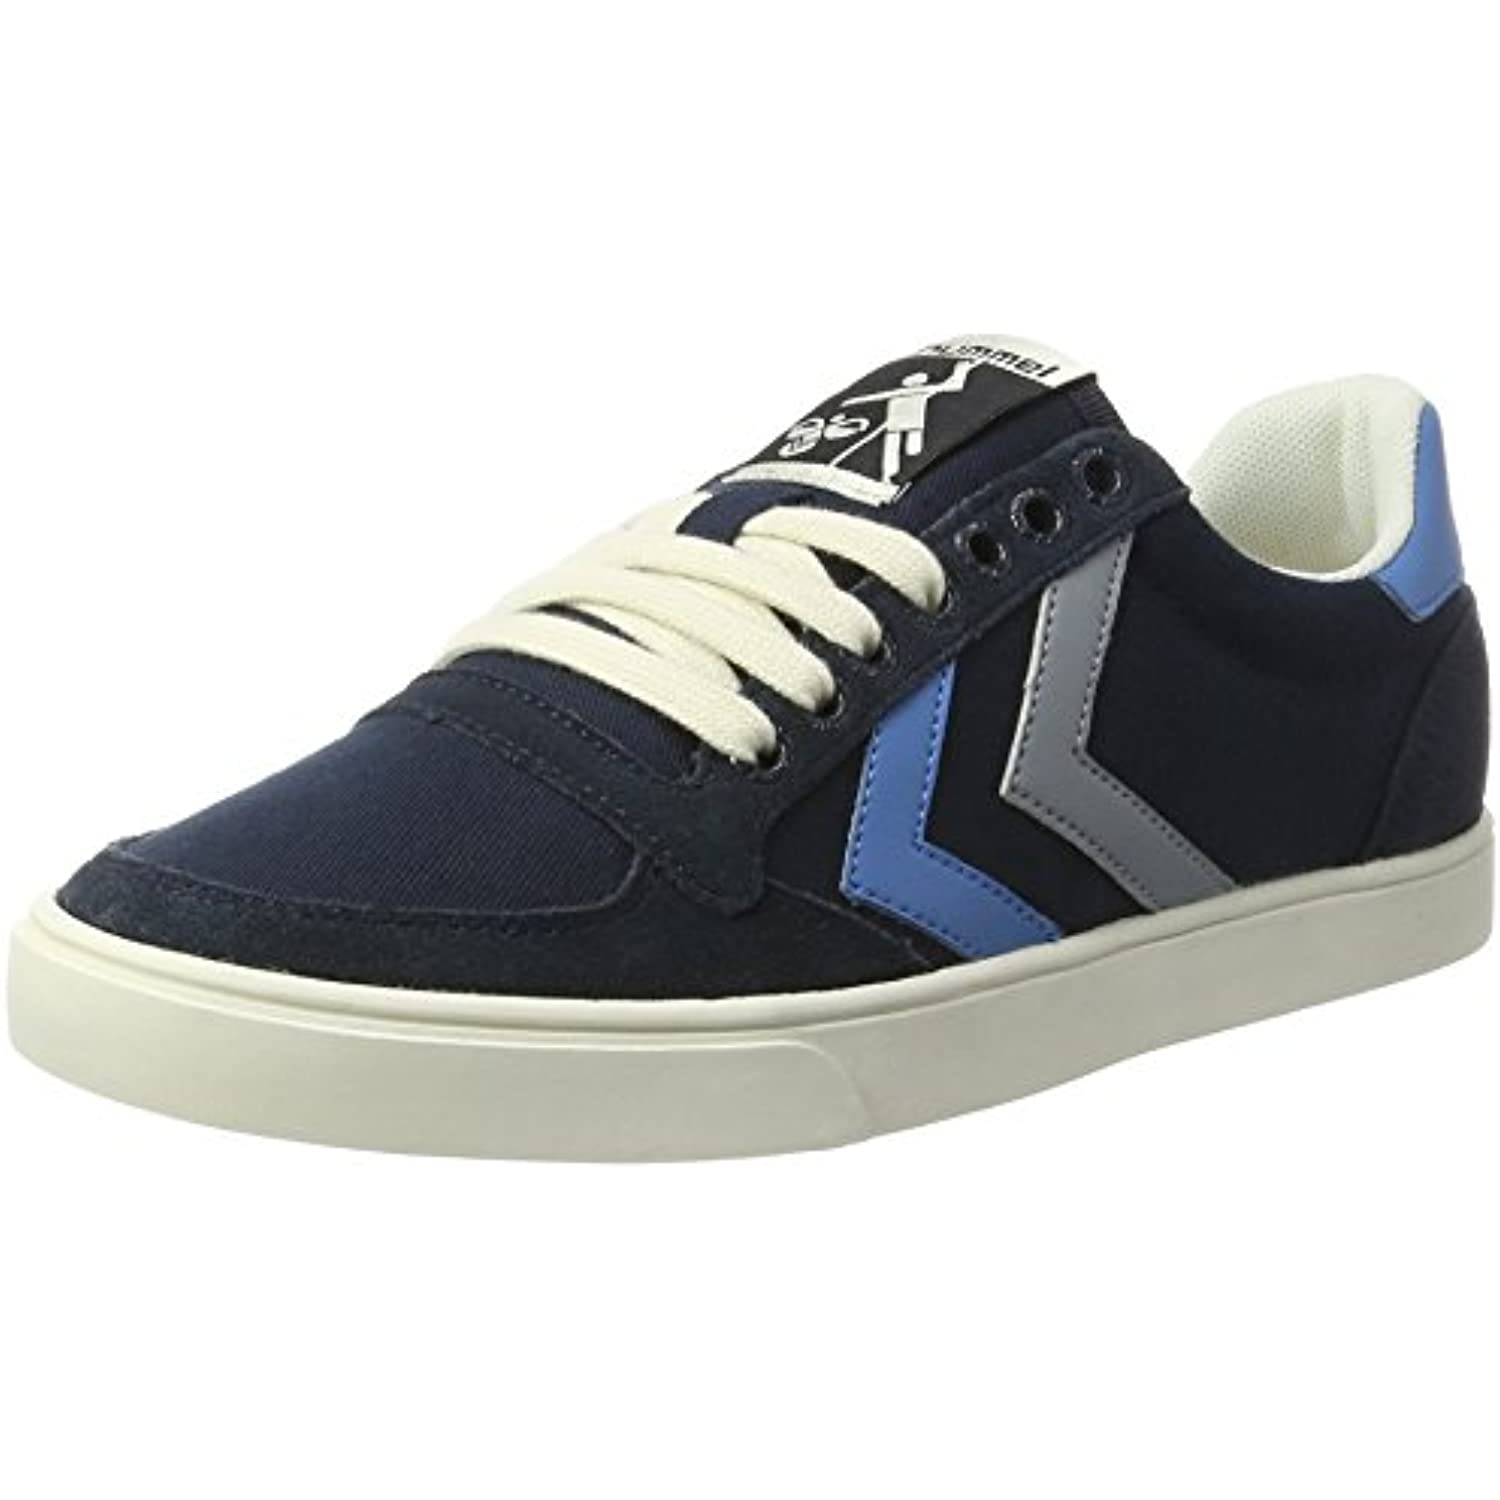 hummel SL. Stadil Stadil Stadil Duo Canvas Low, Sneakers Basses Mixte Adulte - B01M333UI8 - f42585